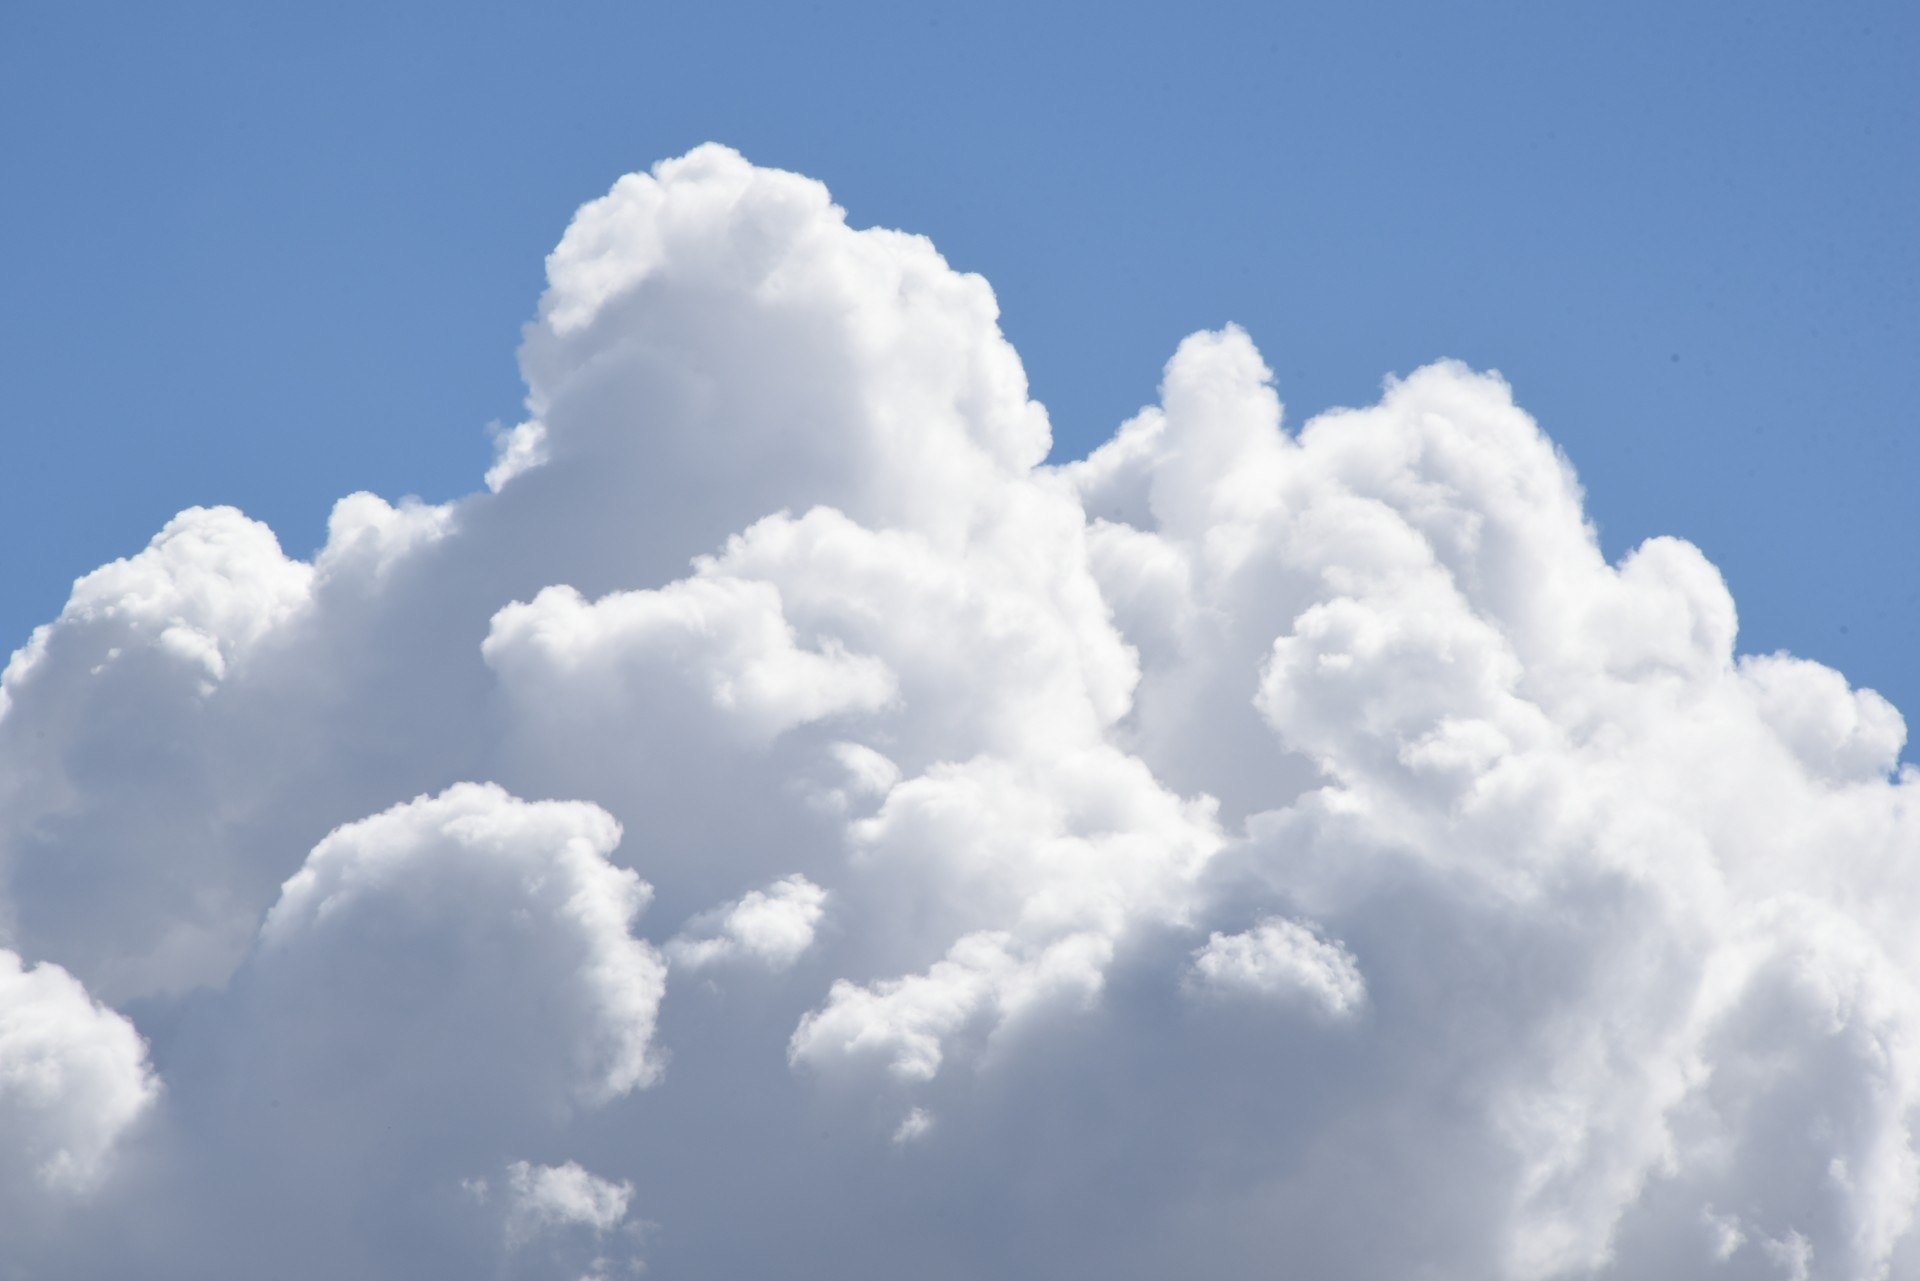 Large Cumulus Clouds #1 Free Stock Photo - Public Domain Pictures